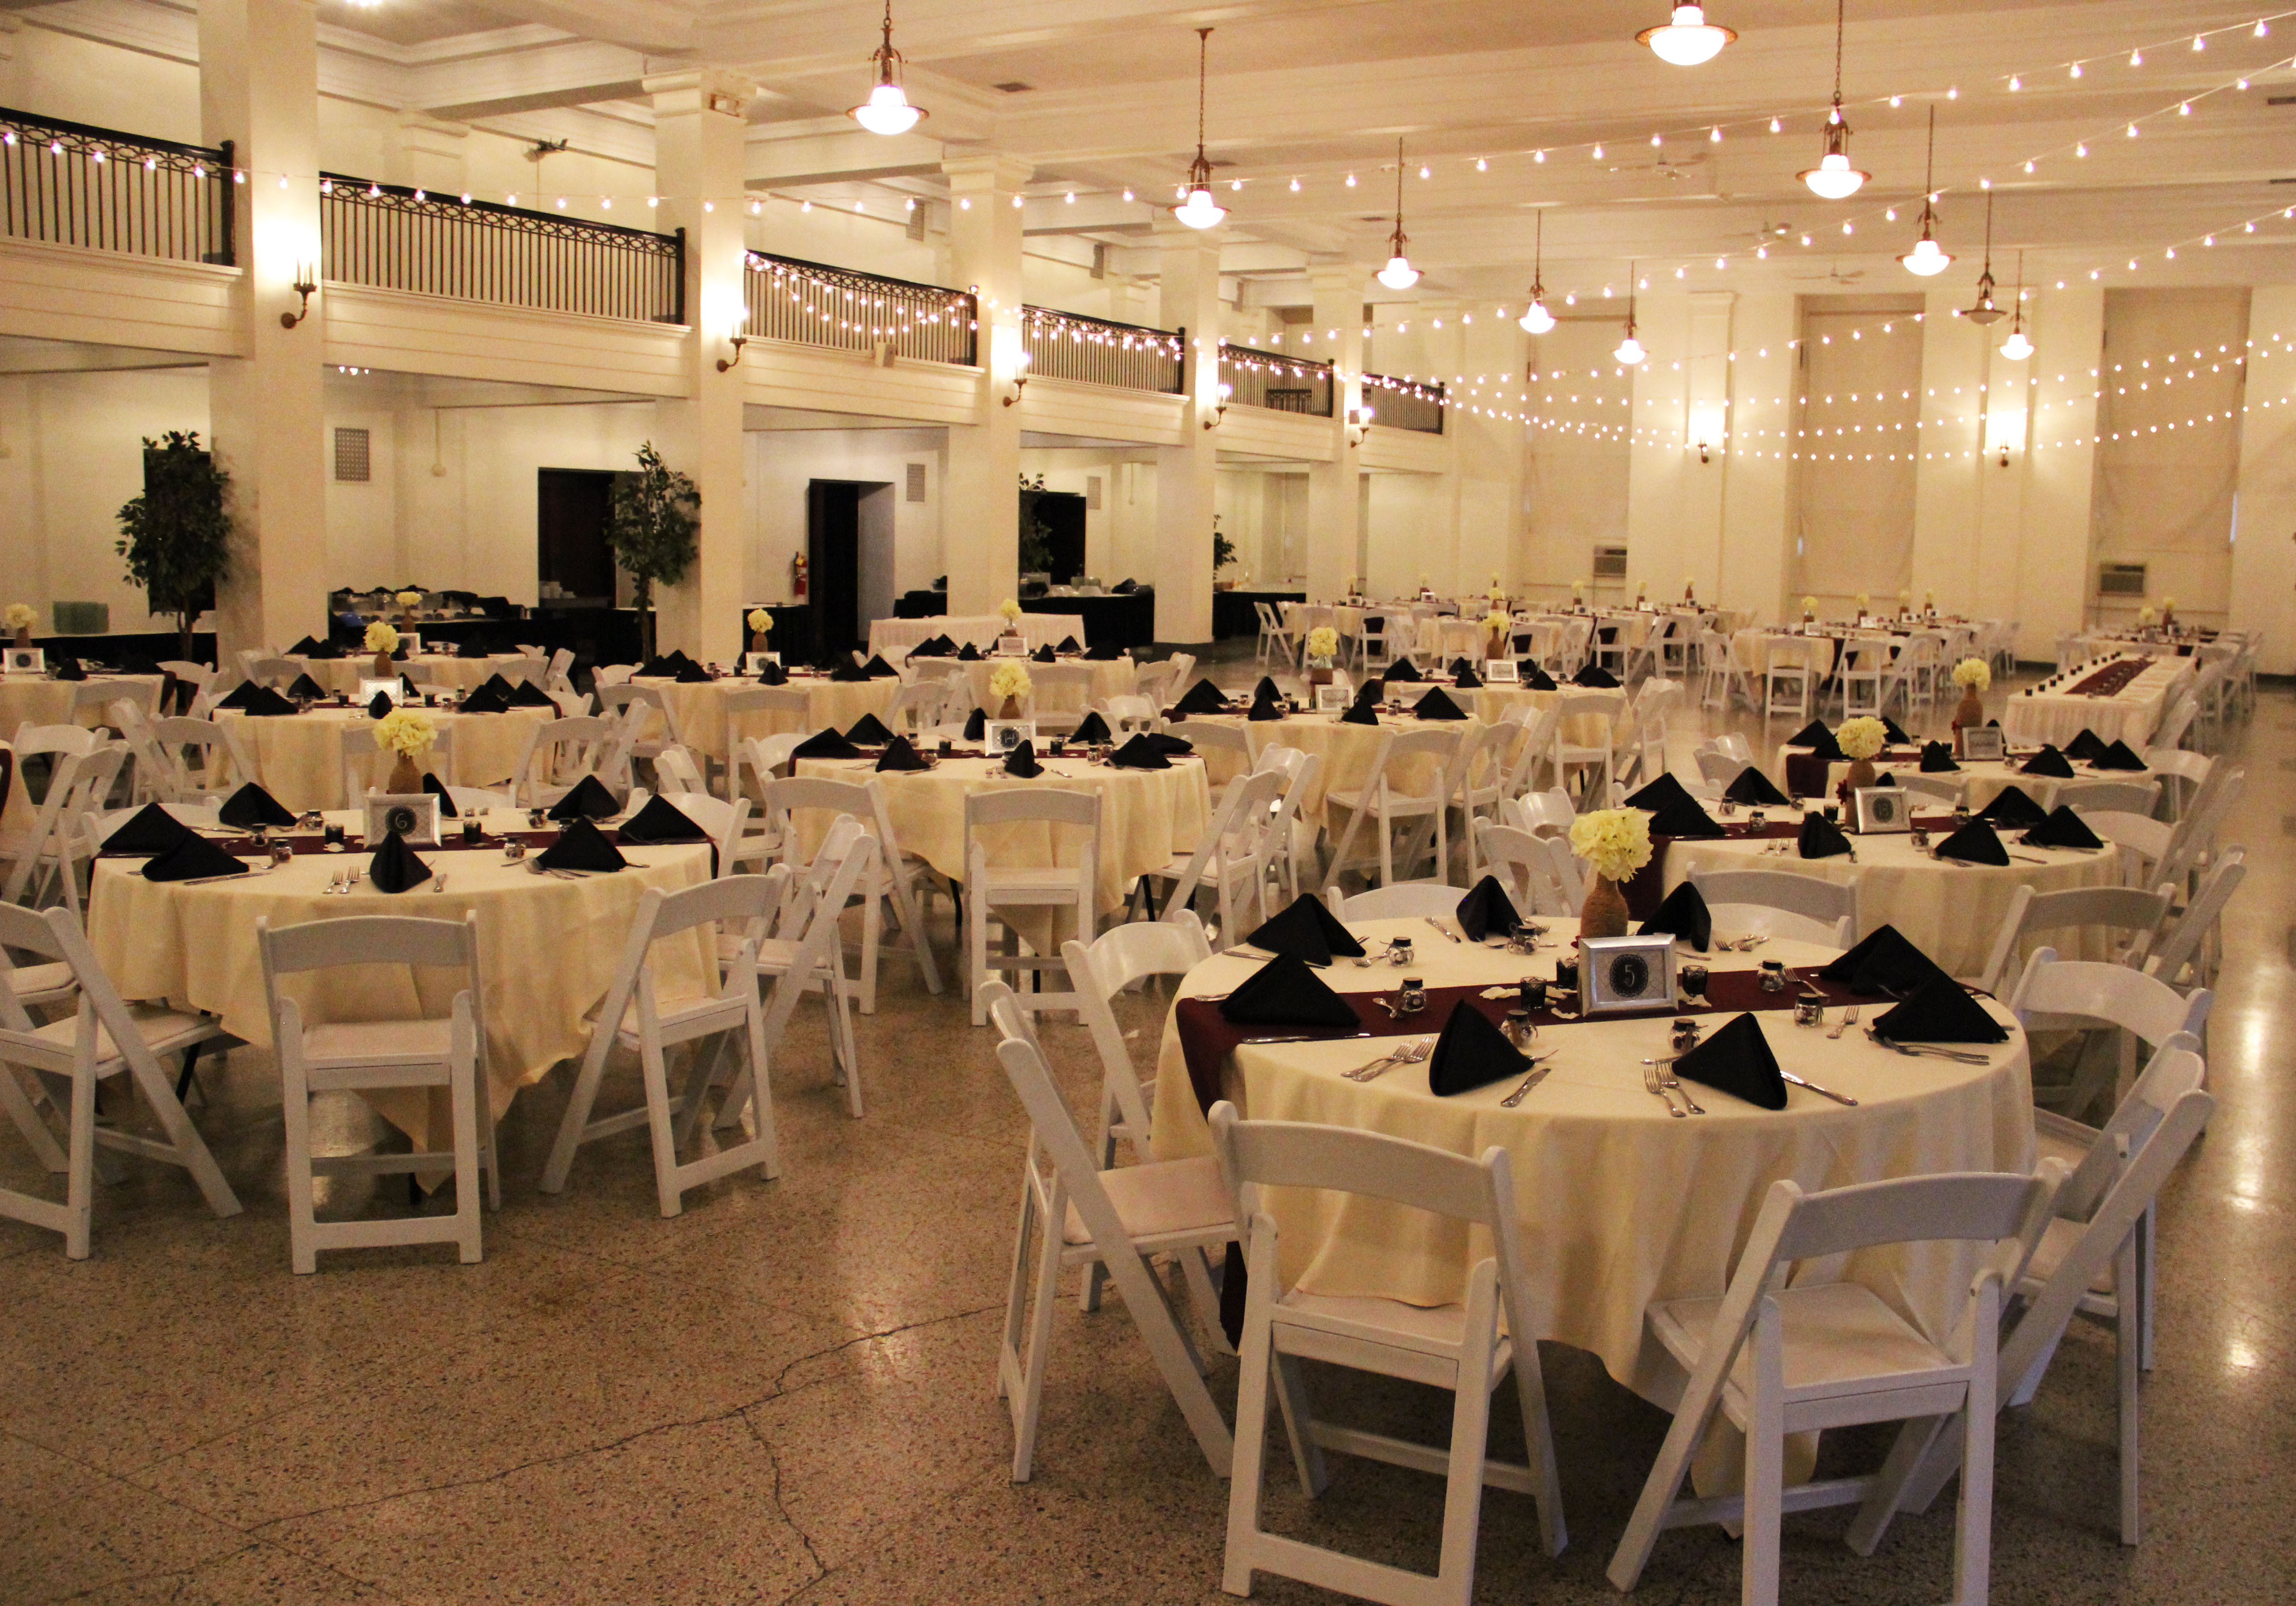 The Colonnade Room. Photo by: Chelsea Scofield